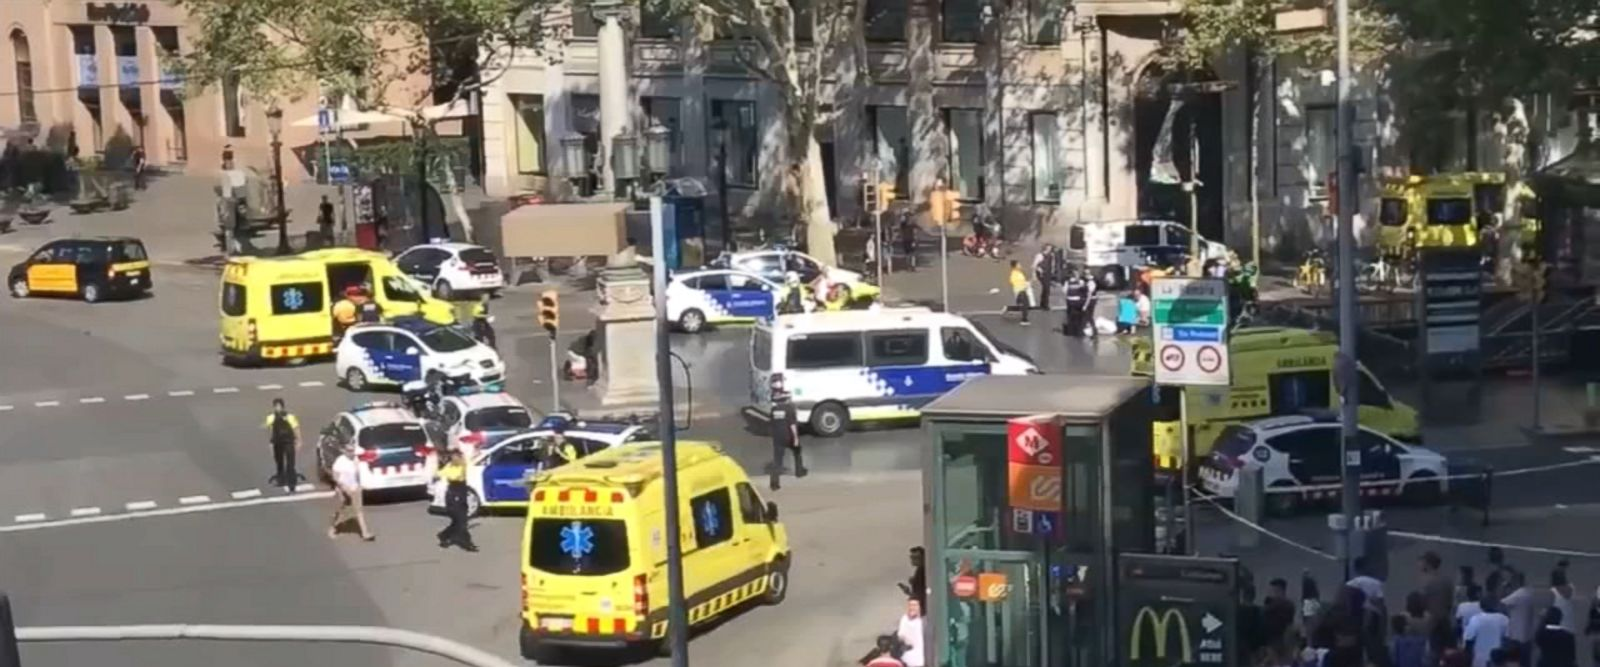 VIDEO: The incident unfolded on Catalunya Square in Barcelona's Las Ramblas district.